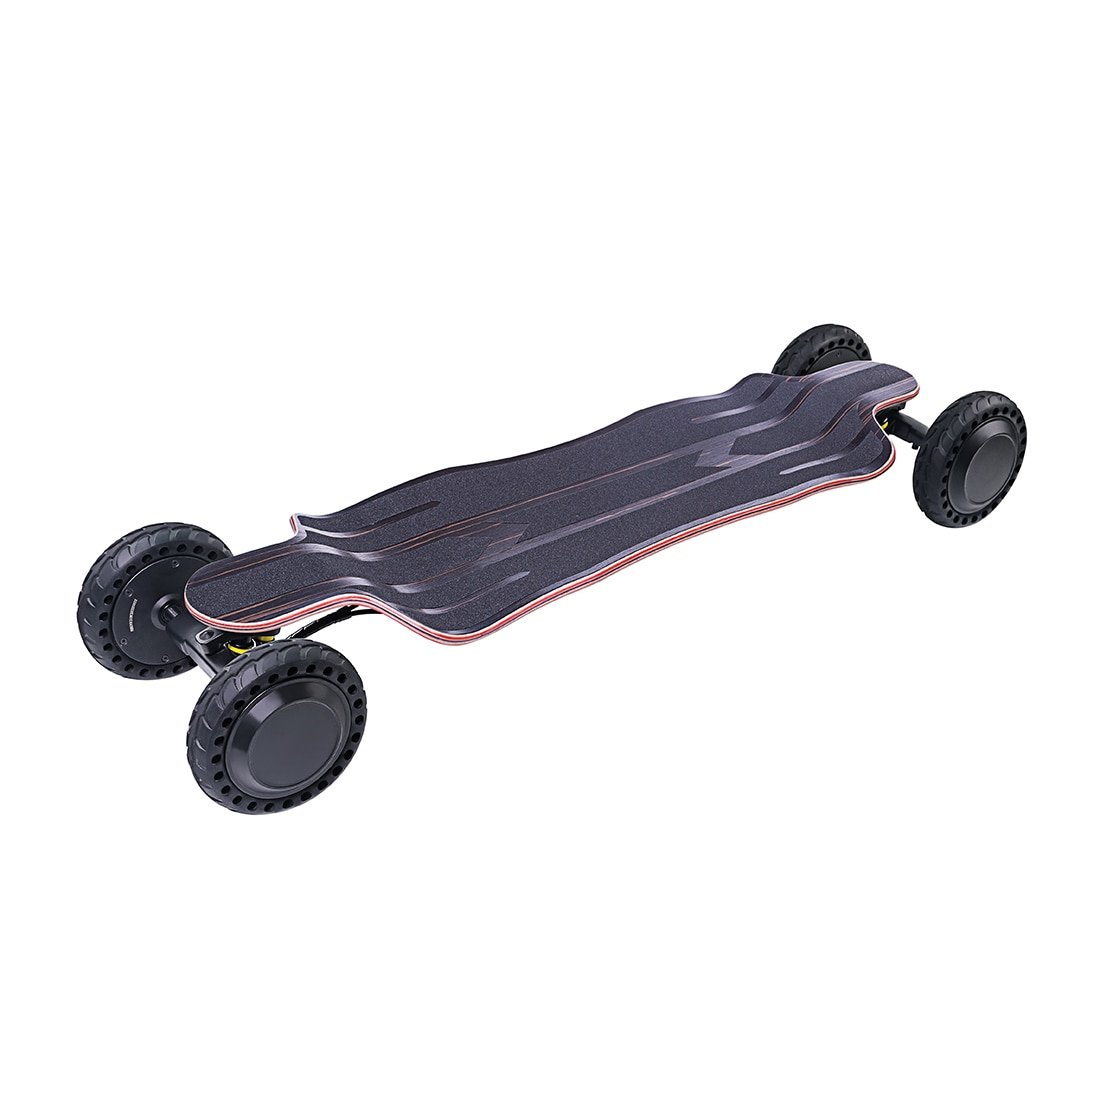 BRT04 4-wheel Electric Skateboard Outdoor Frosted Board Electric Scooter for Outdoor Racing Playing